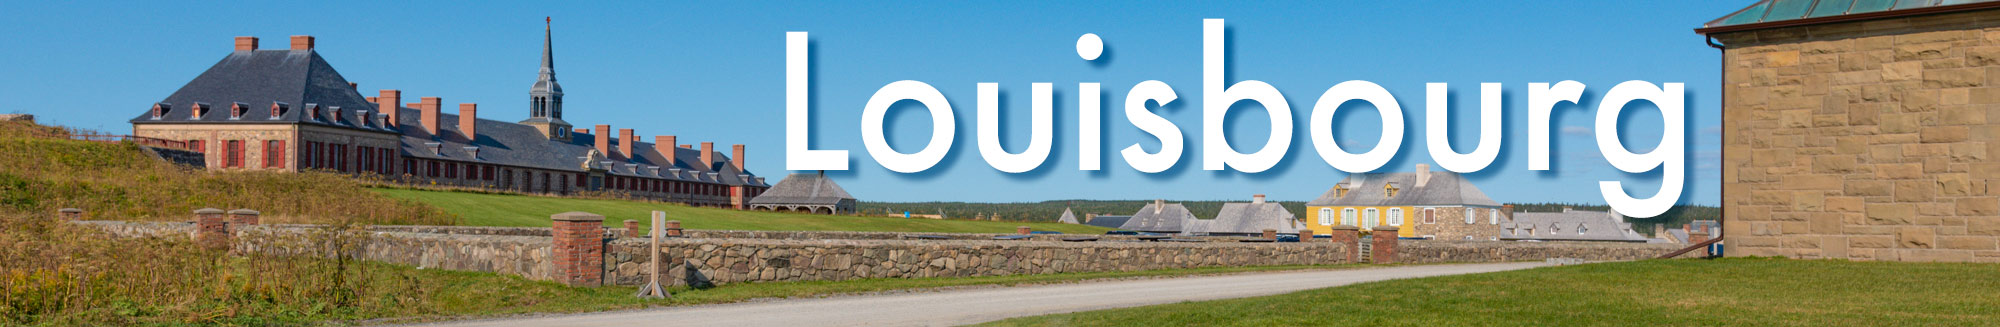 louisbourg-header.jpg